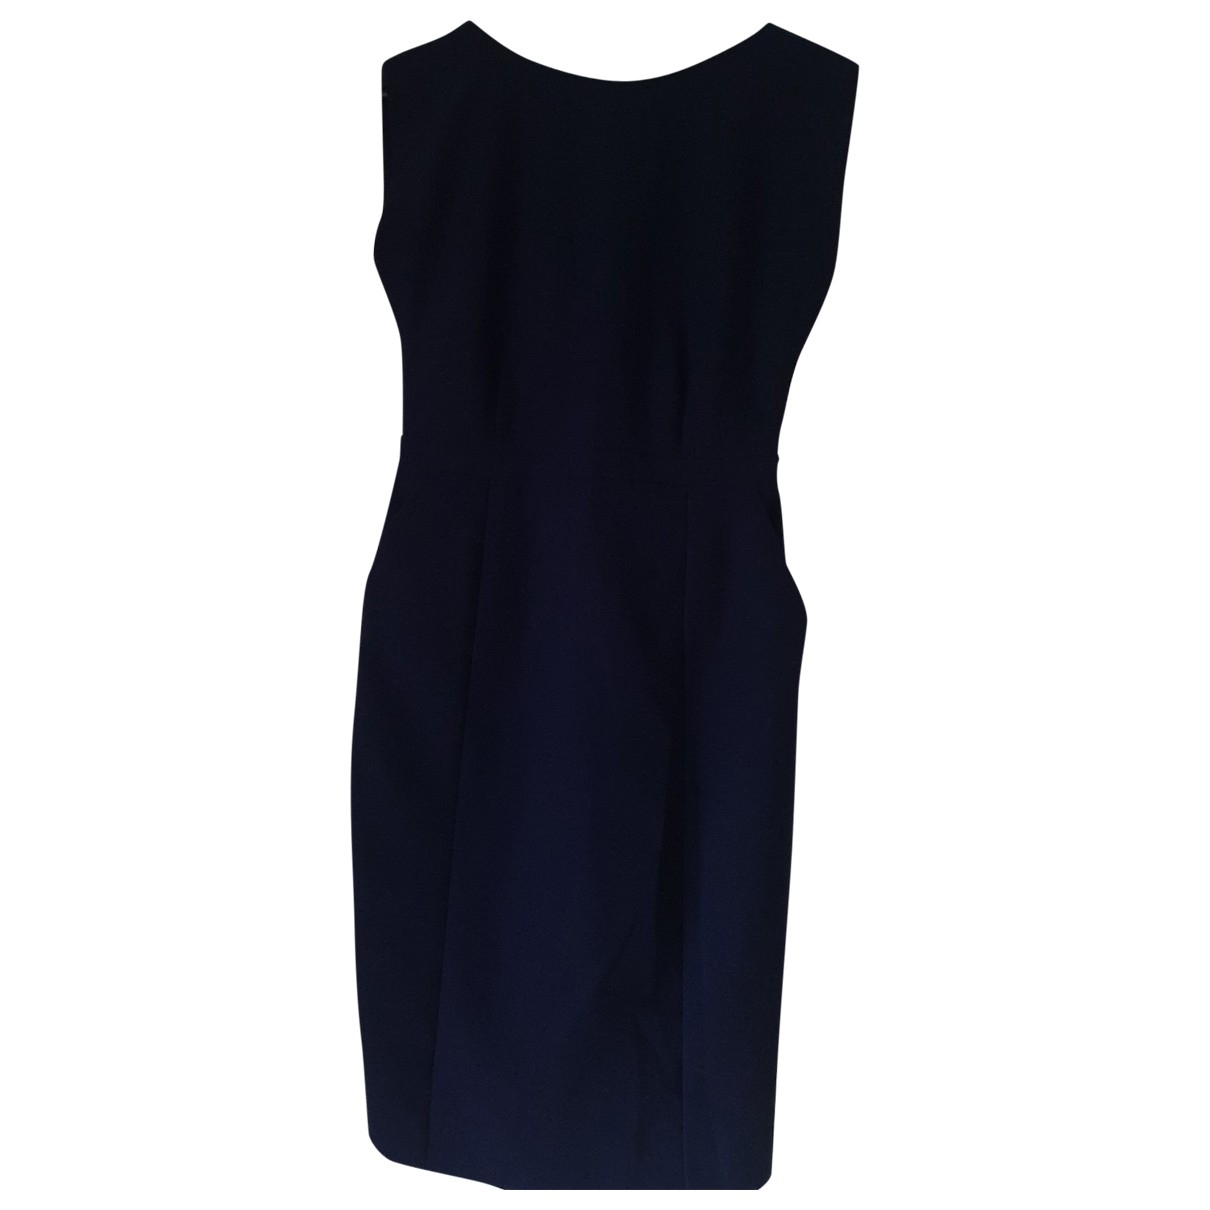 Hôtel Particulier \N Blue dress for Women 36 FR